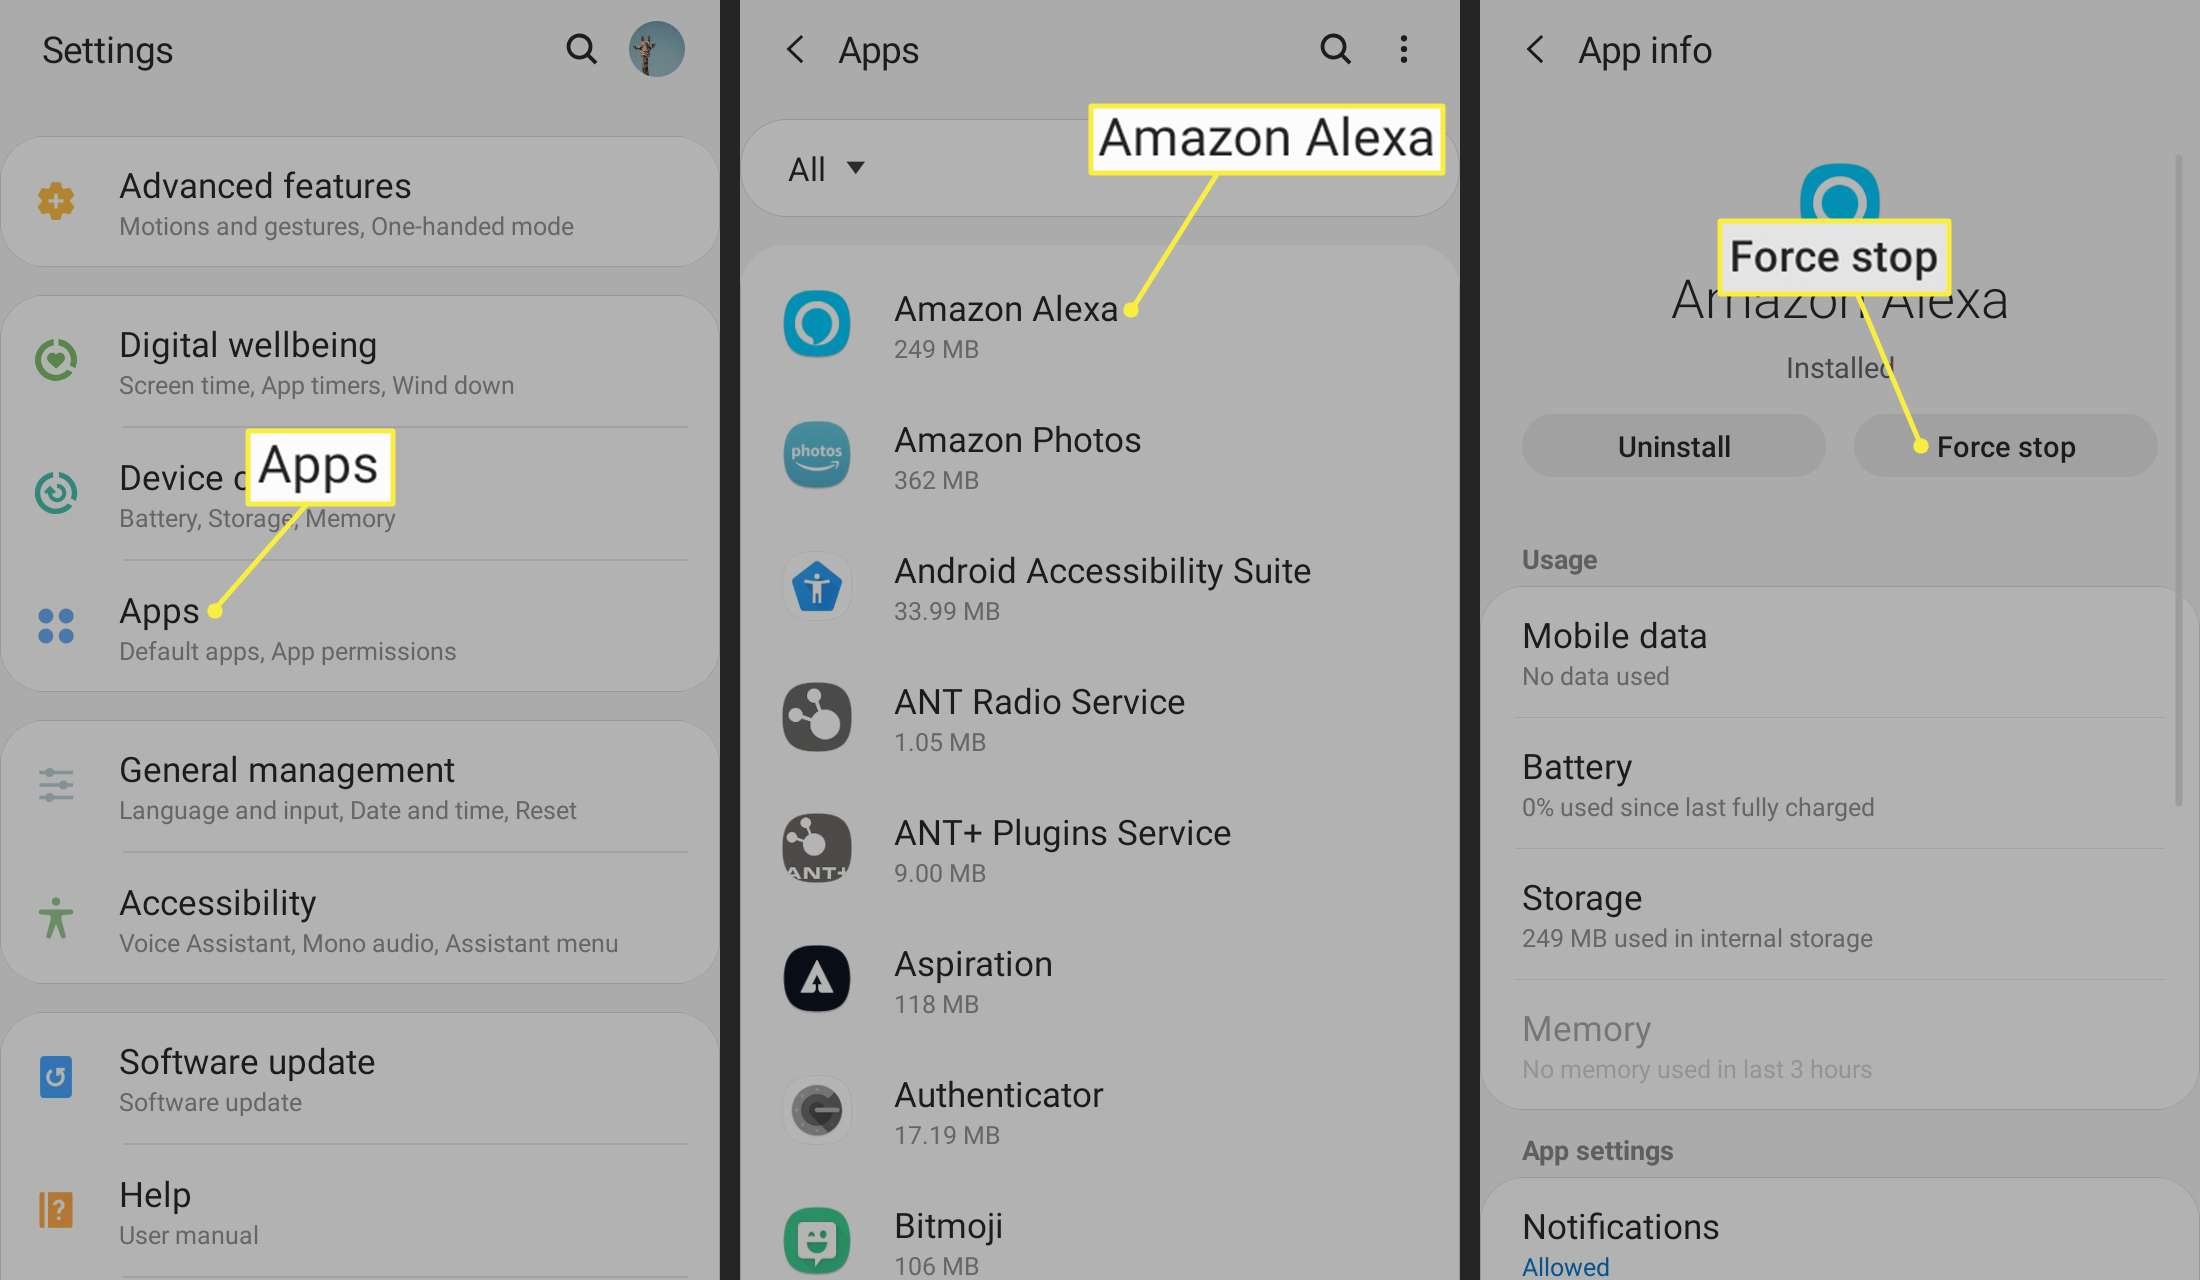 Apps, Amazon Alexa, and Force Stop highlighted in Android settings